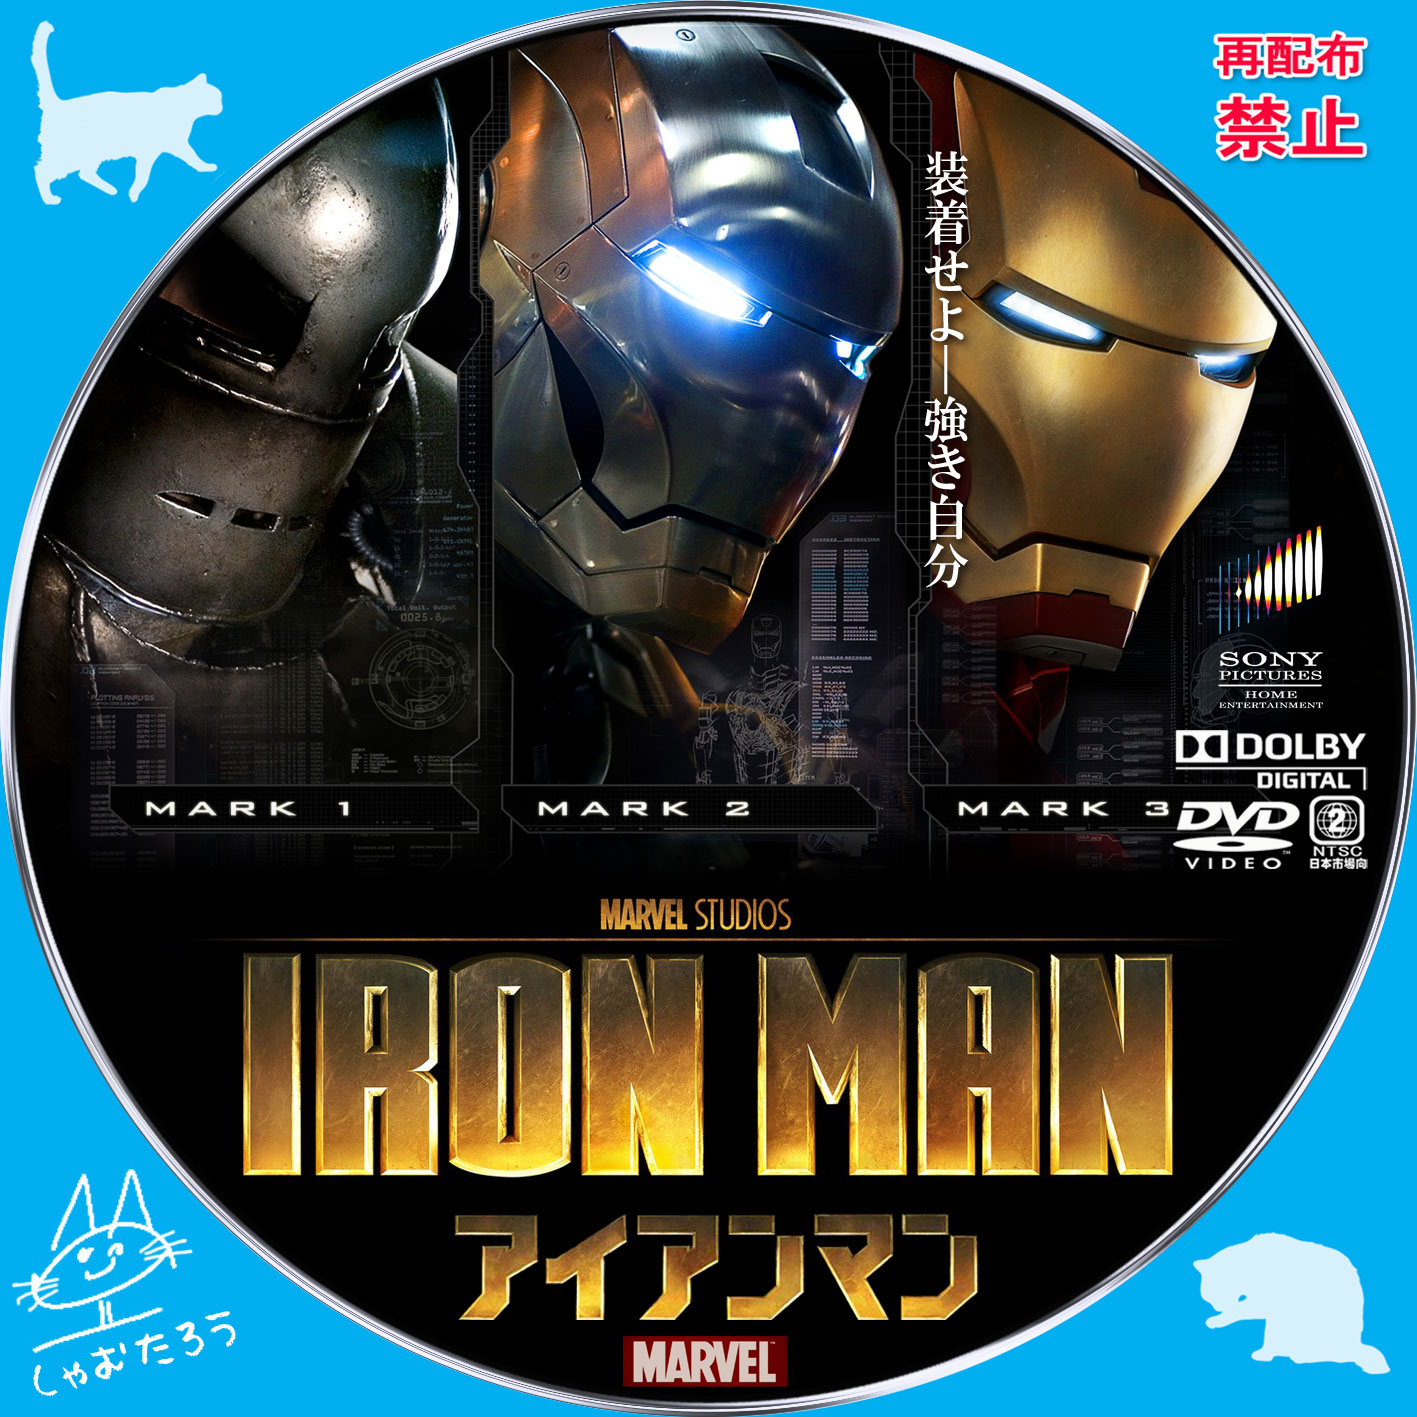 dating an ironman triathlete When iron man (tony stark) called the avengers first meeting and donated the stark house as the avengers mansion headquarters, jarvis grew accustomed to the guests and served the avengers for many years thereafter, acting as a father figure to.